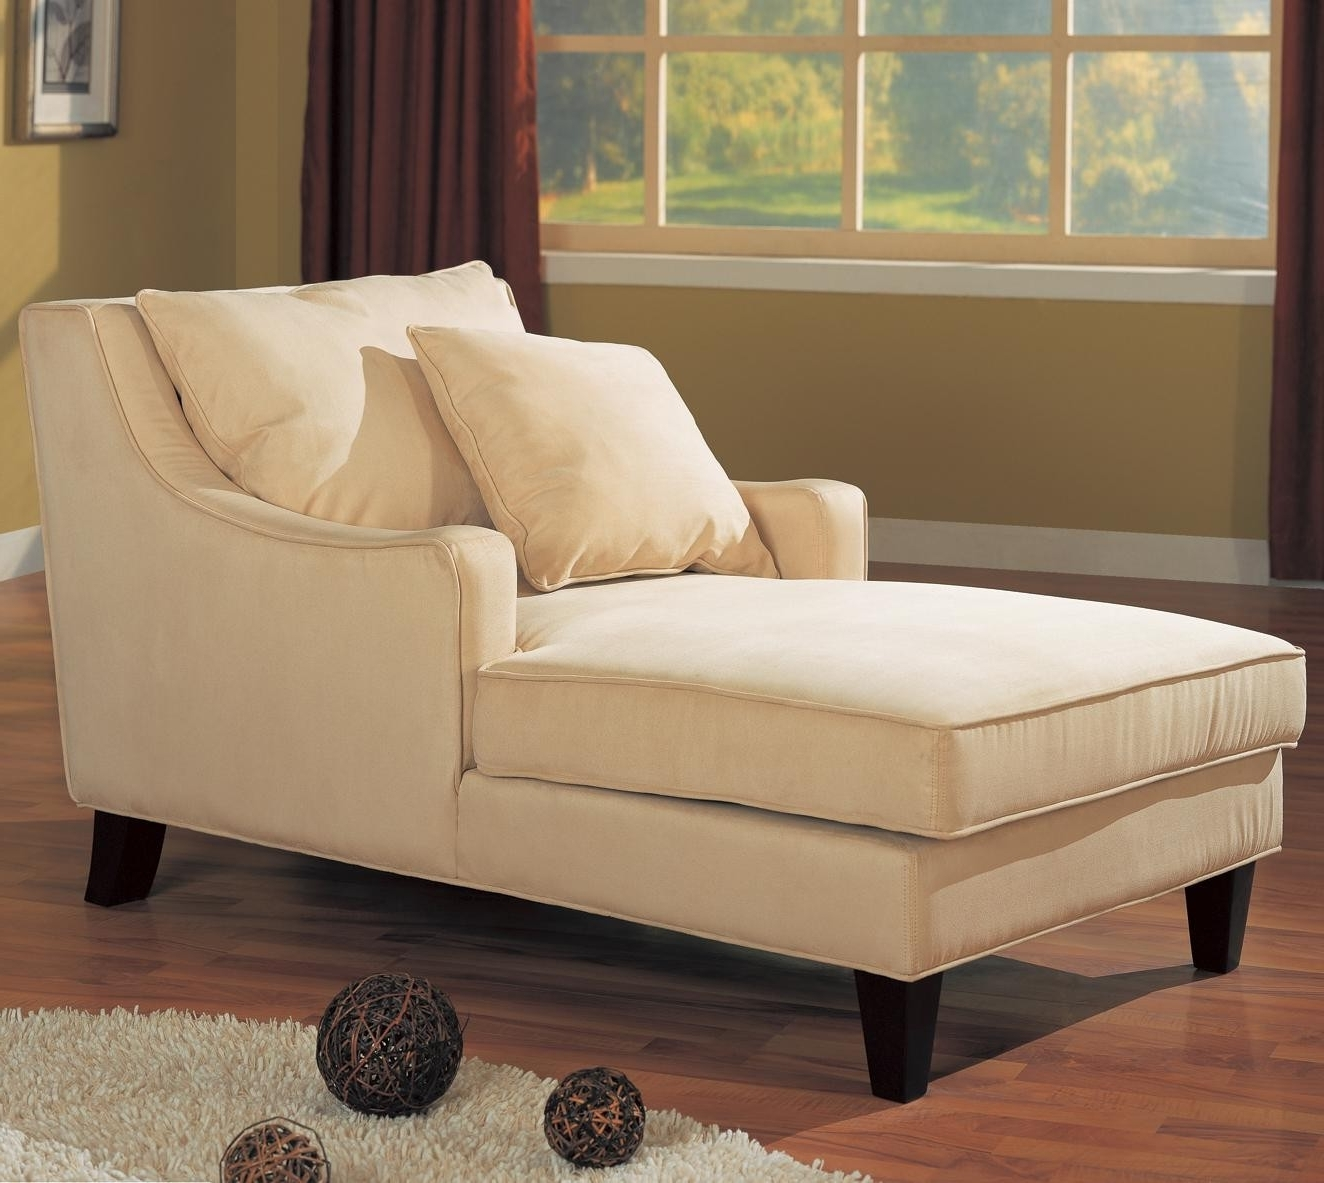 Accent Seating Microfiber Chaise Lounge Lowest Price – Sofa Inside Most Up To Date Microfiber Chaises (View 8 of 15)